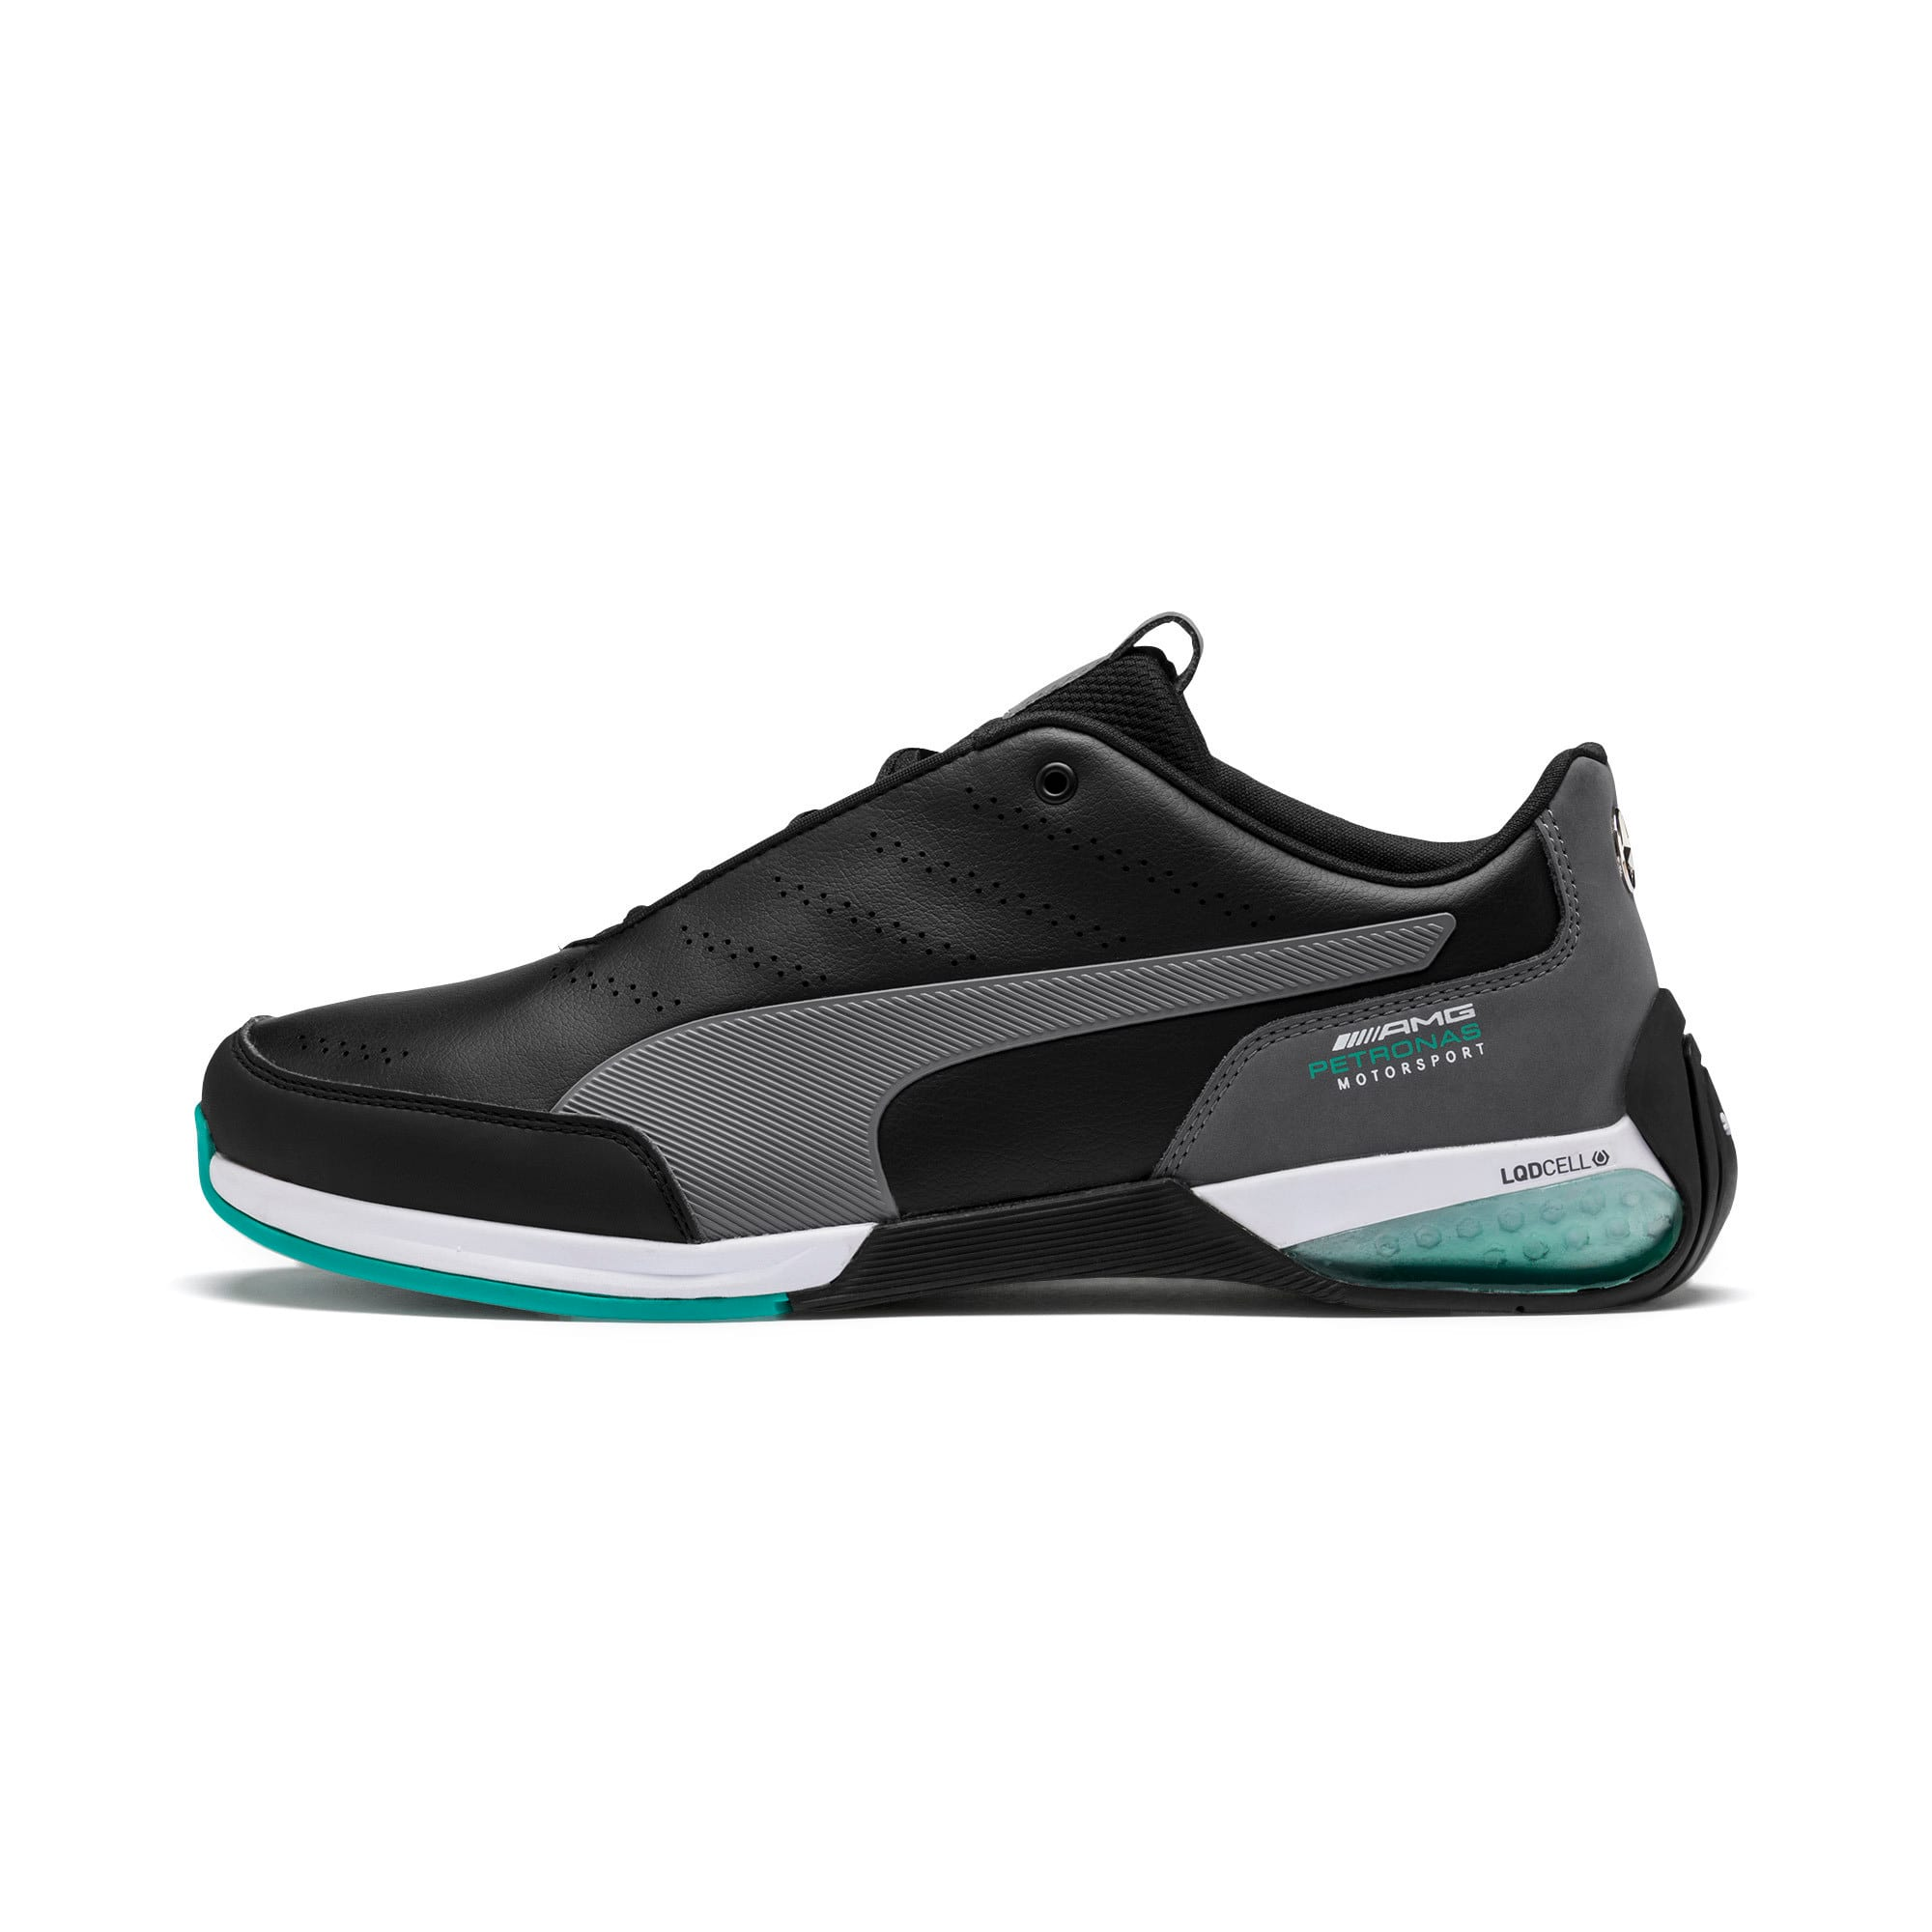 Thumbnail 1 of Mercedes AMG Petronas Motorsport Kart Cat X Trainers, Puma Black-Smoked Pearl, medium